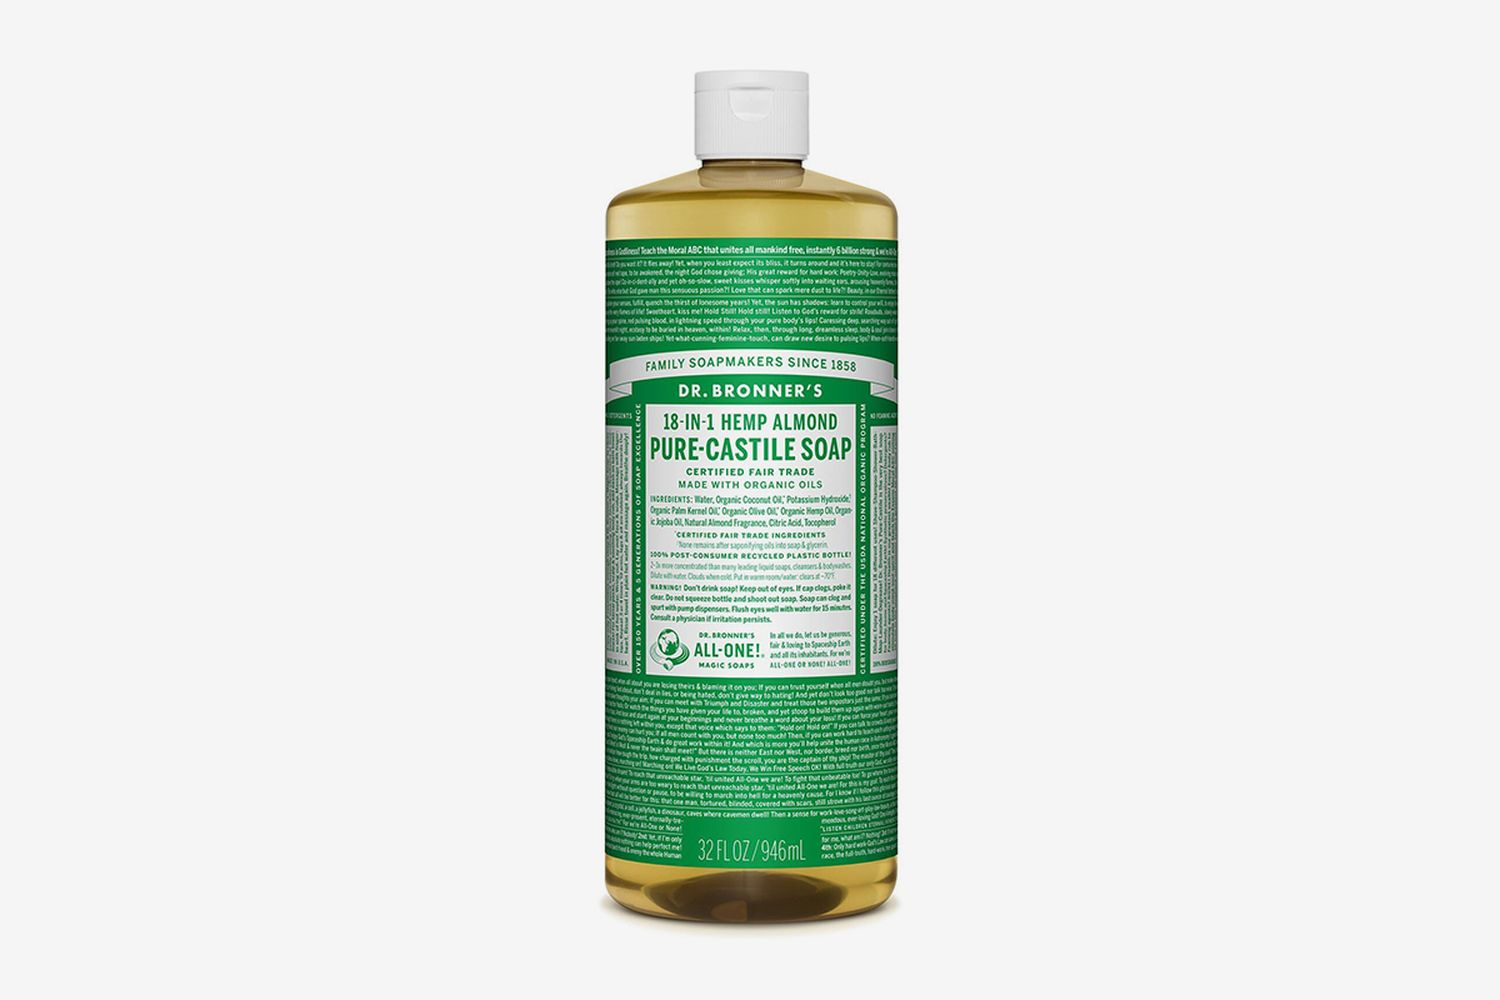 Hemp Almond Pure-Castile Liquid Soap